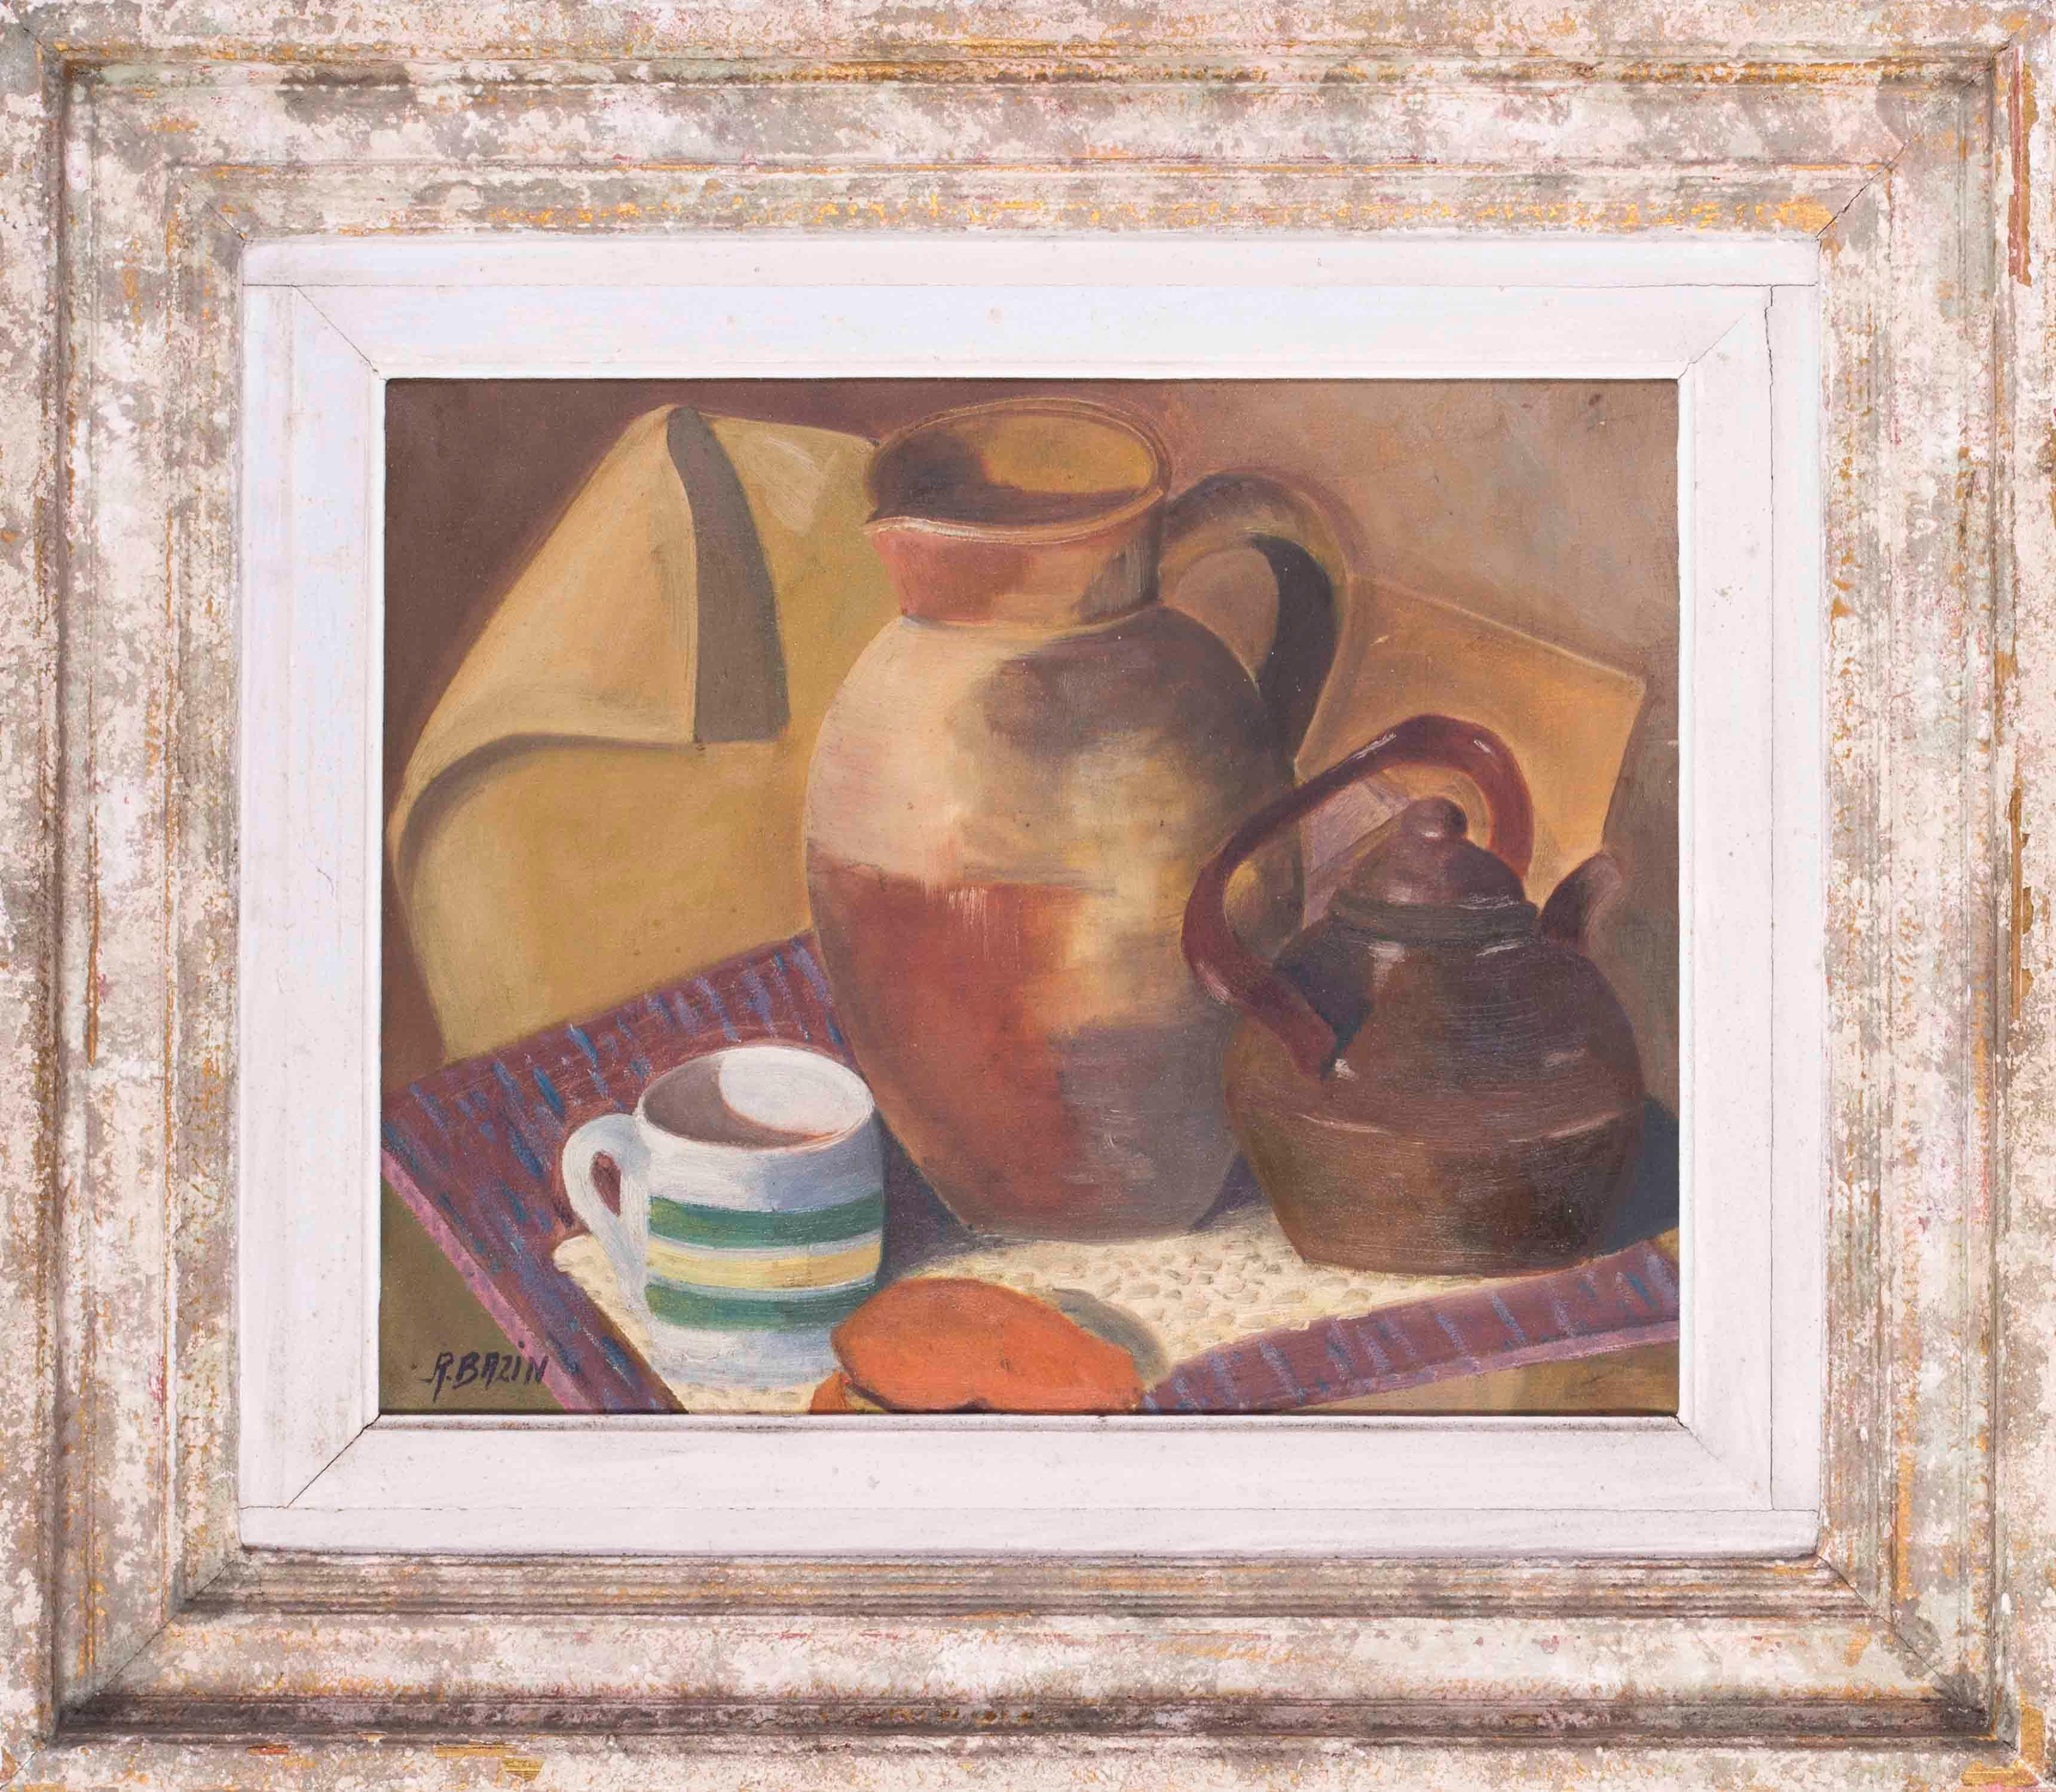 French 20th Century Post Impressionist still life of kettle, cup and jug